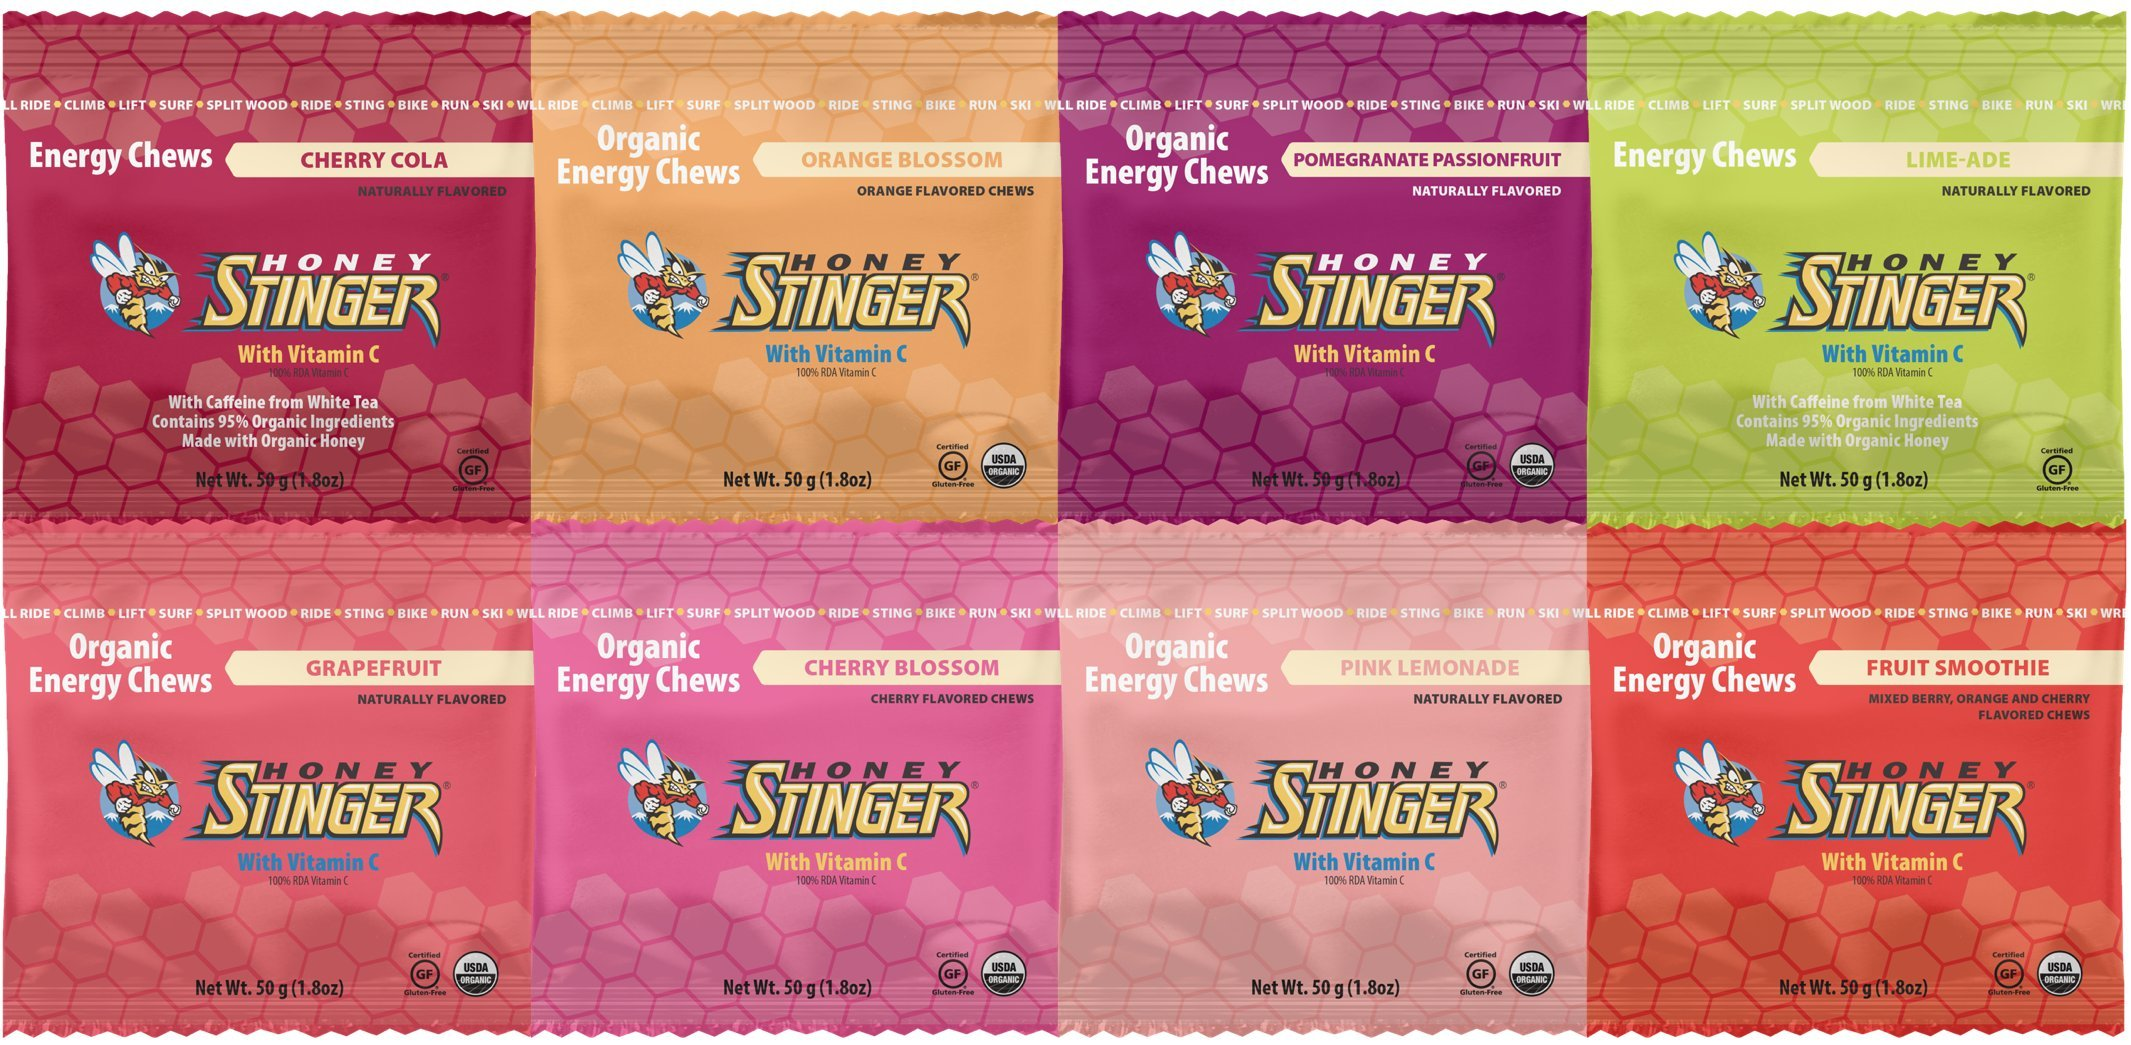 Honey Stinger Organic Energy Chews (8 Count) - Cherry Cola, Orange Blossom, Pomegranate Passion, Limeade, Grapefruit, Cherry Blossom, Pink Lemonade, and Fruit Smoothie - 1.8 oz Package Each